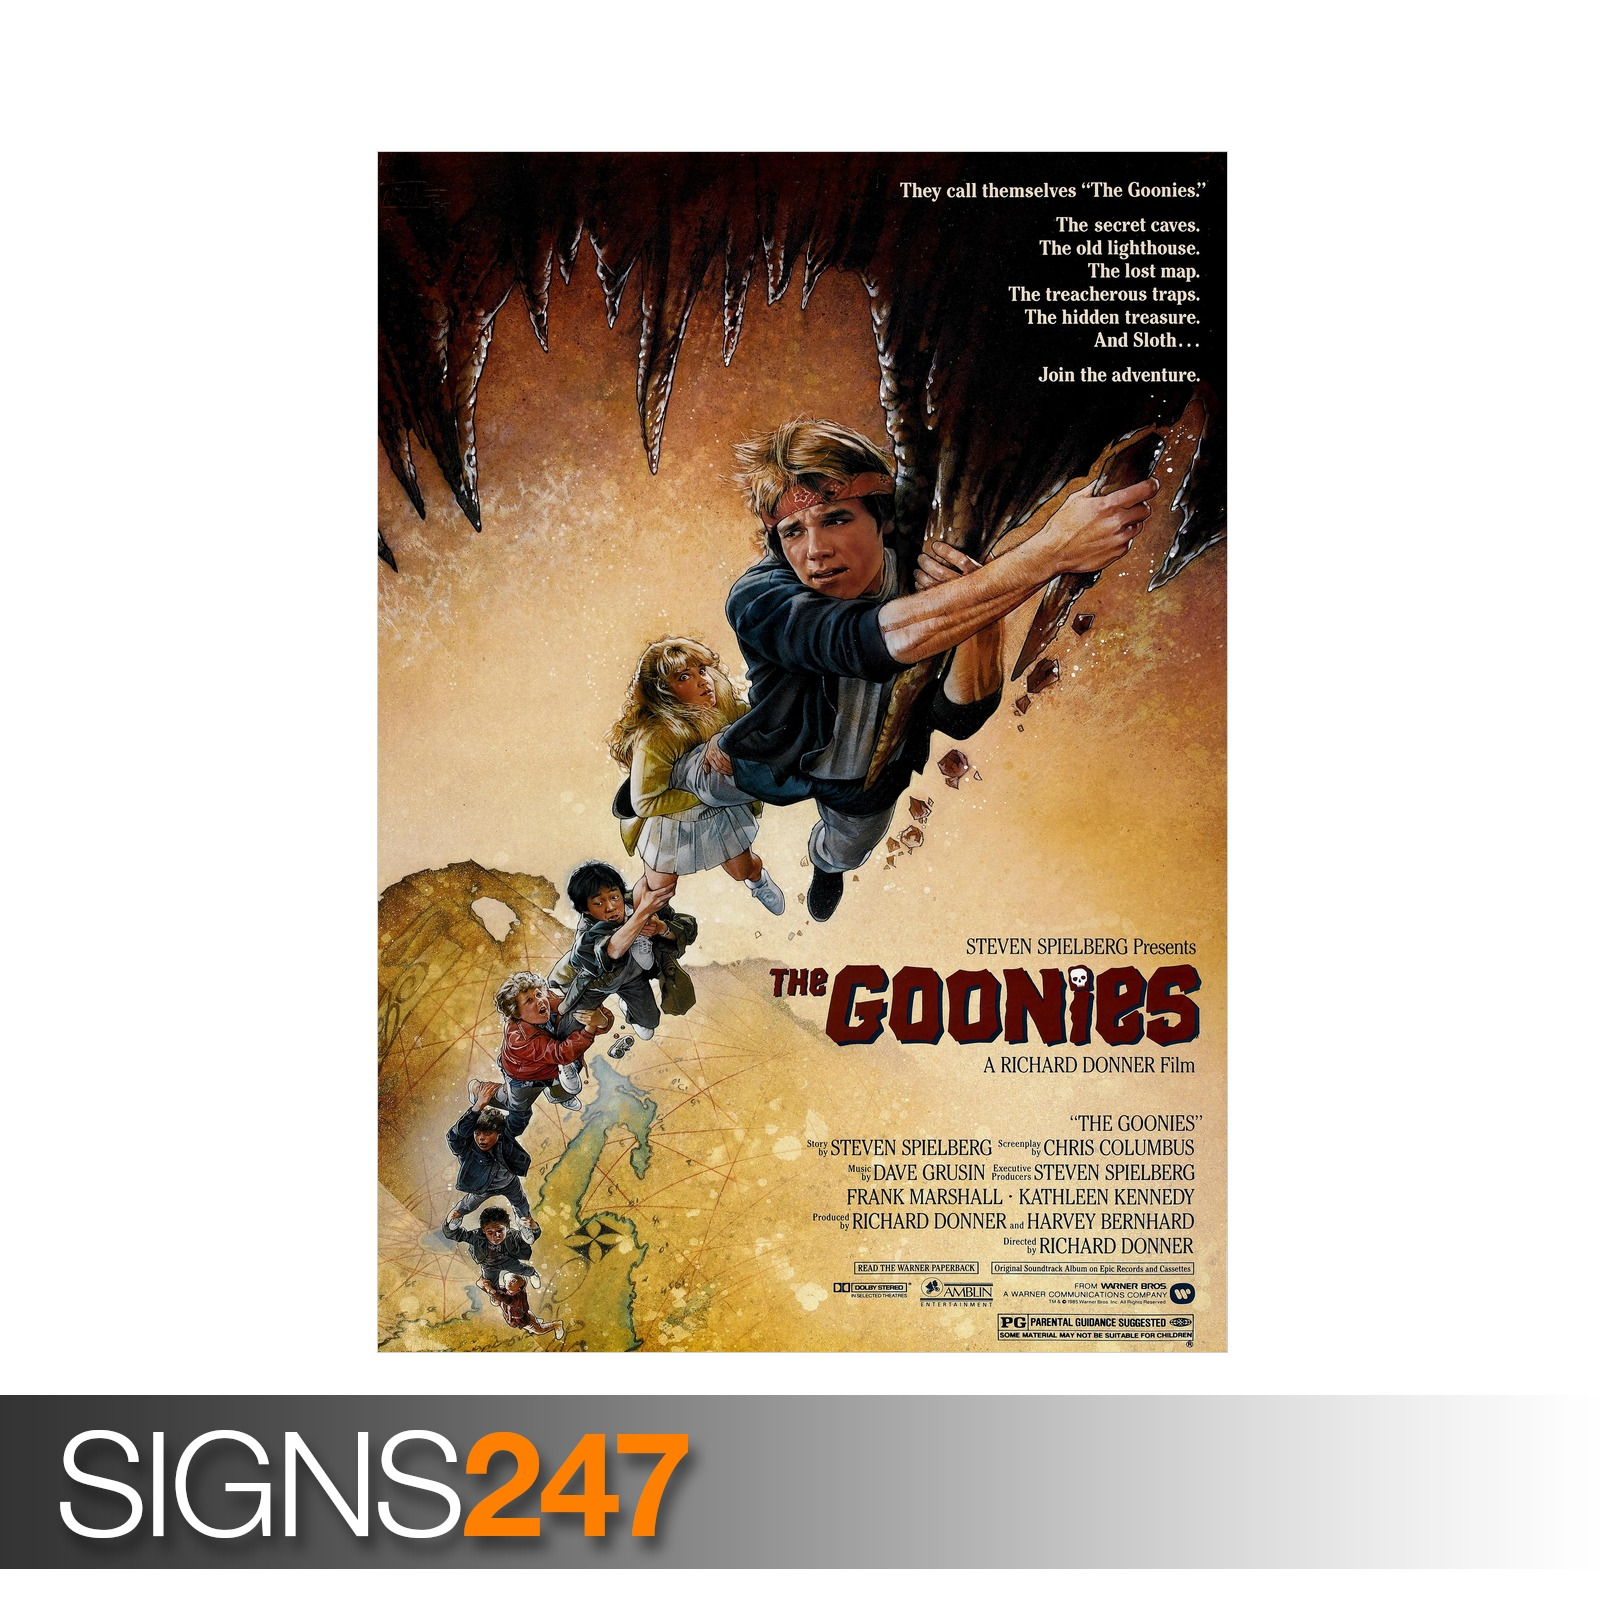 THE-GOONIES-ZZ028-MOVIE-POSTER-Photo-Picture-Poster-Print-Art-A0-to-A4